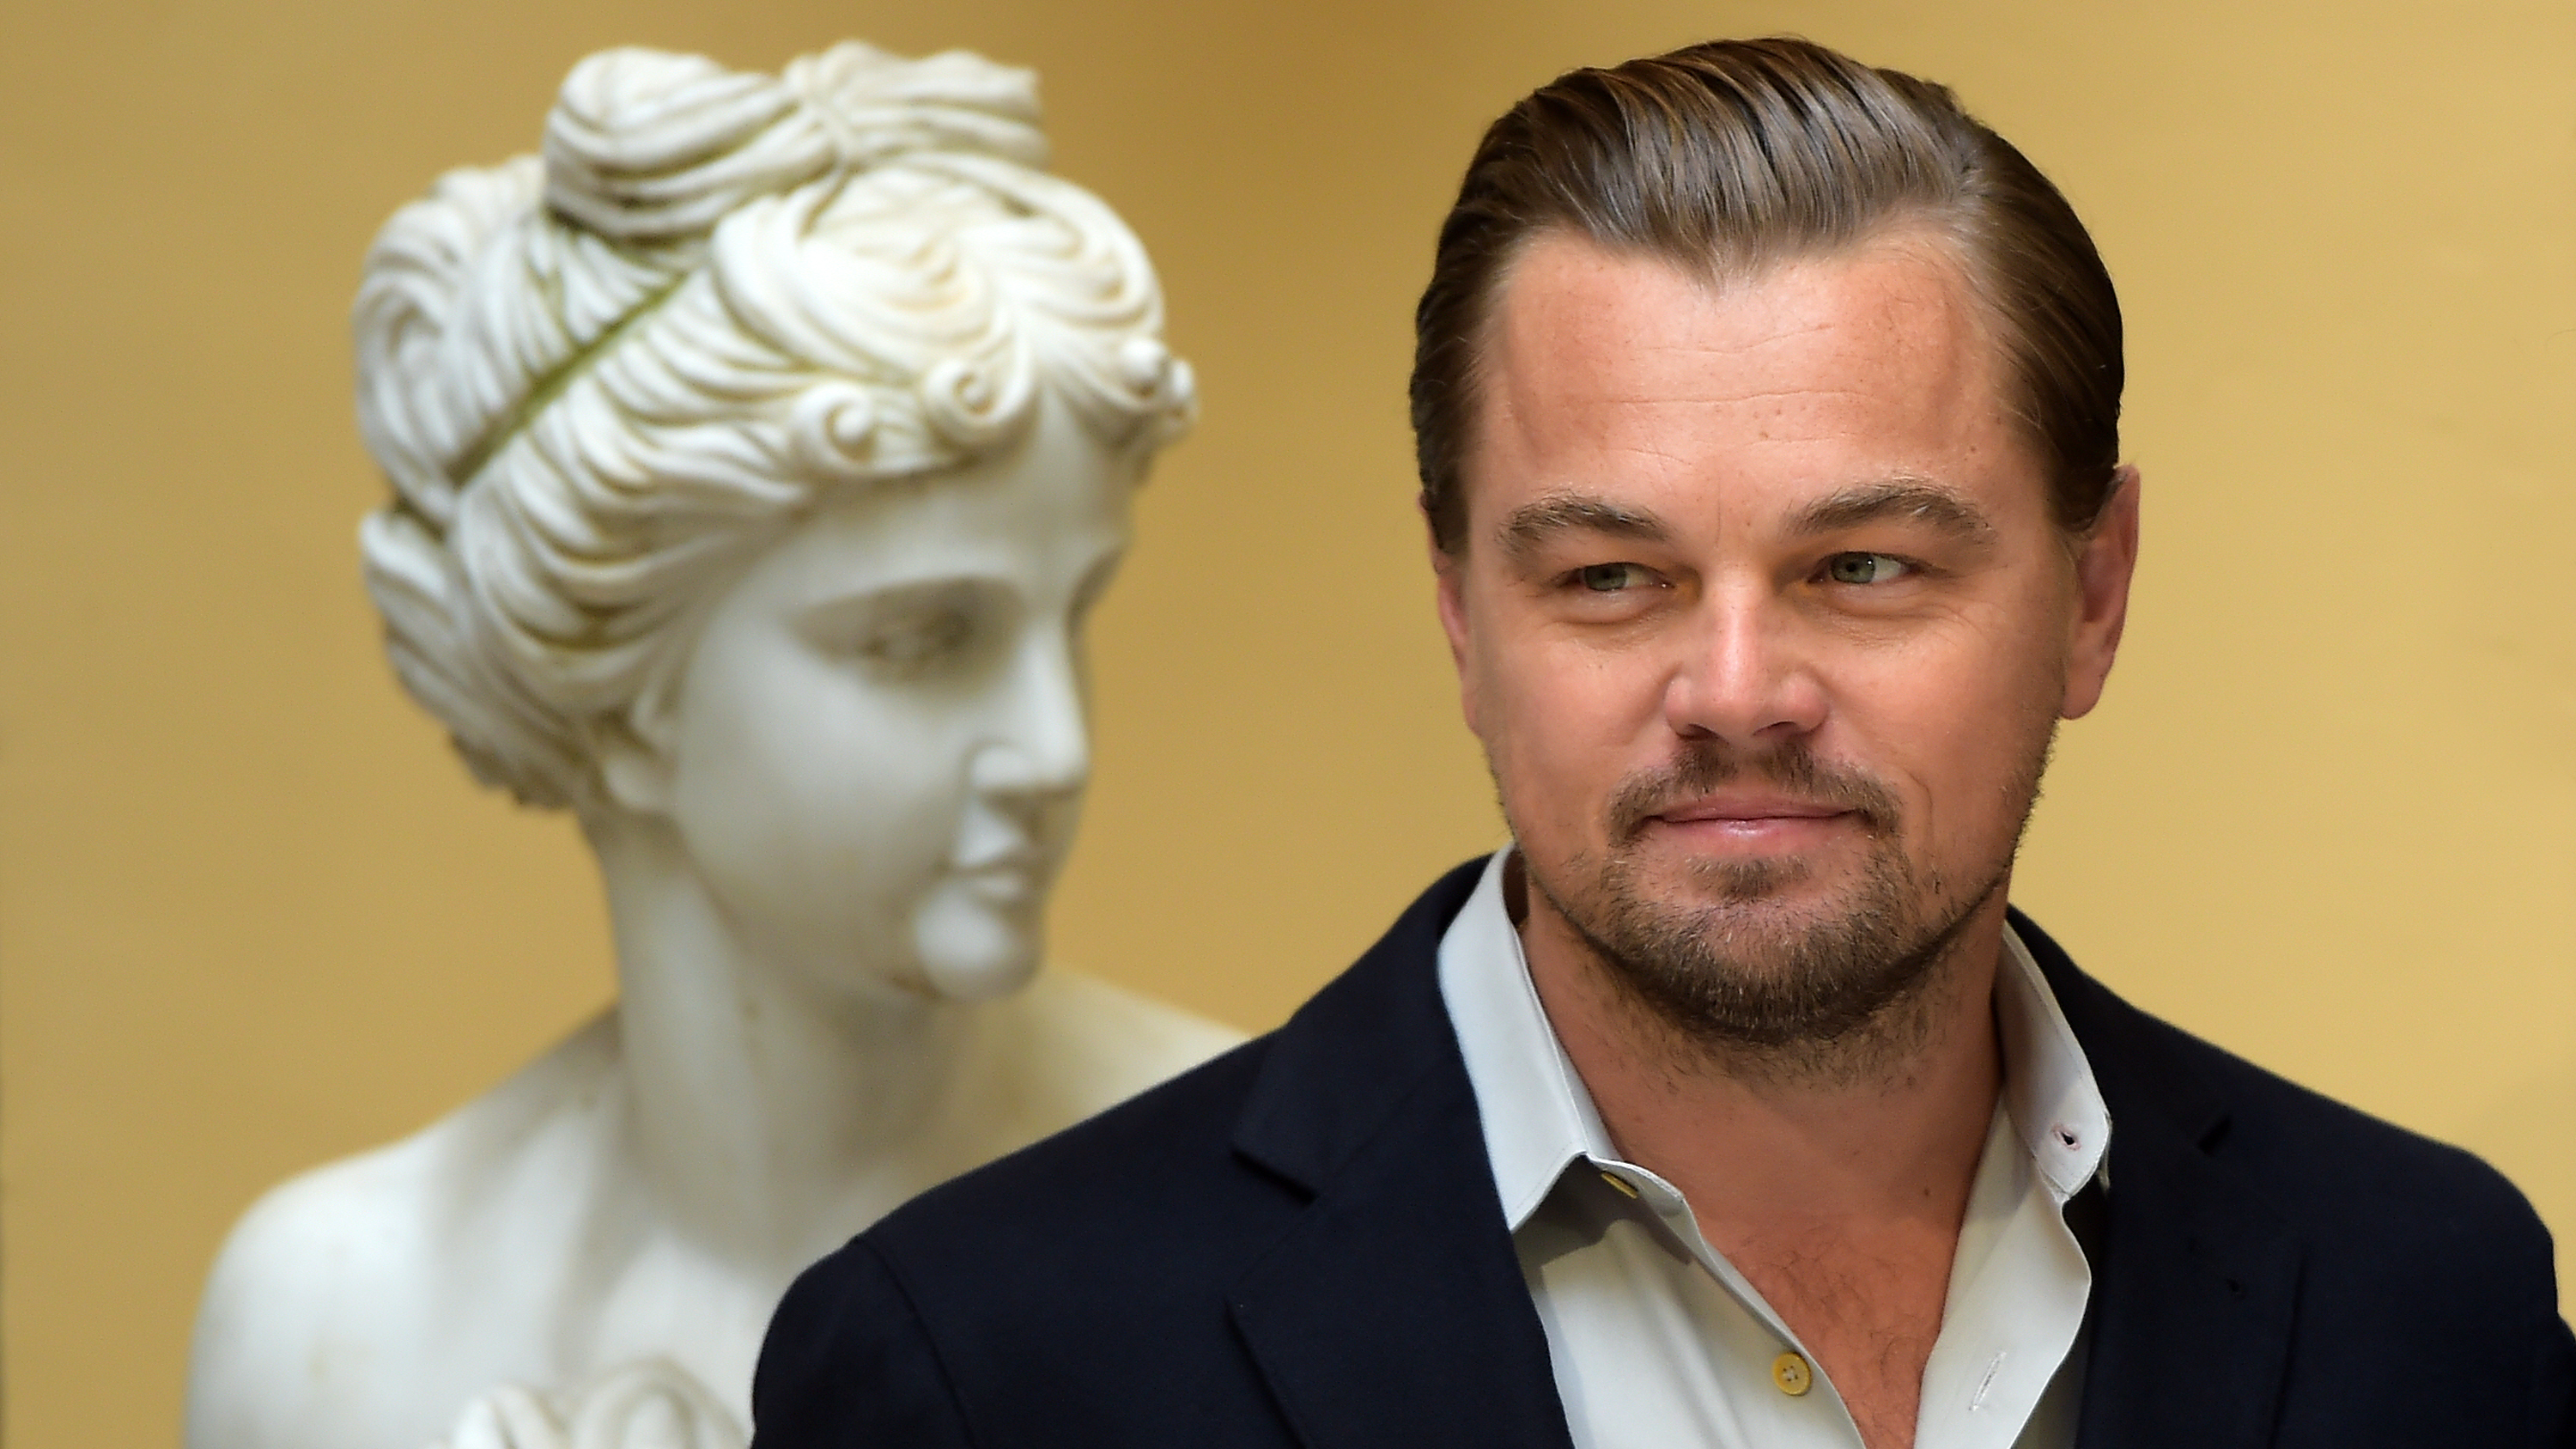 Leo Di Caprio Posts The First Images From 'Once Upon A Time In Hollywood'